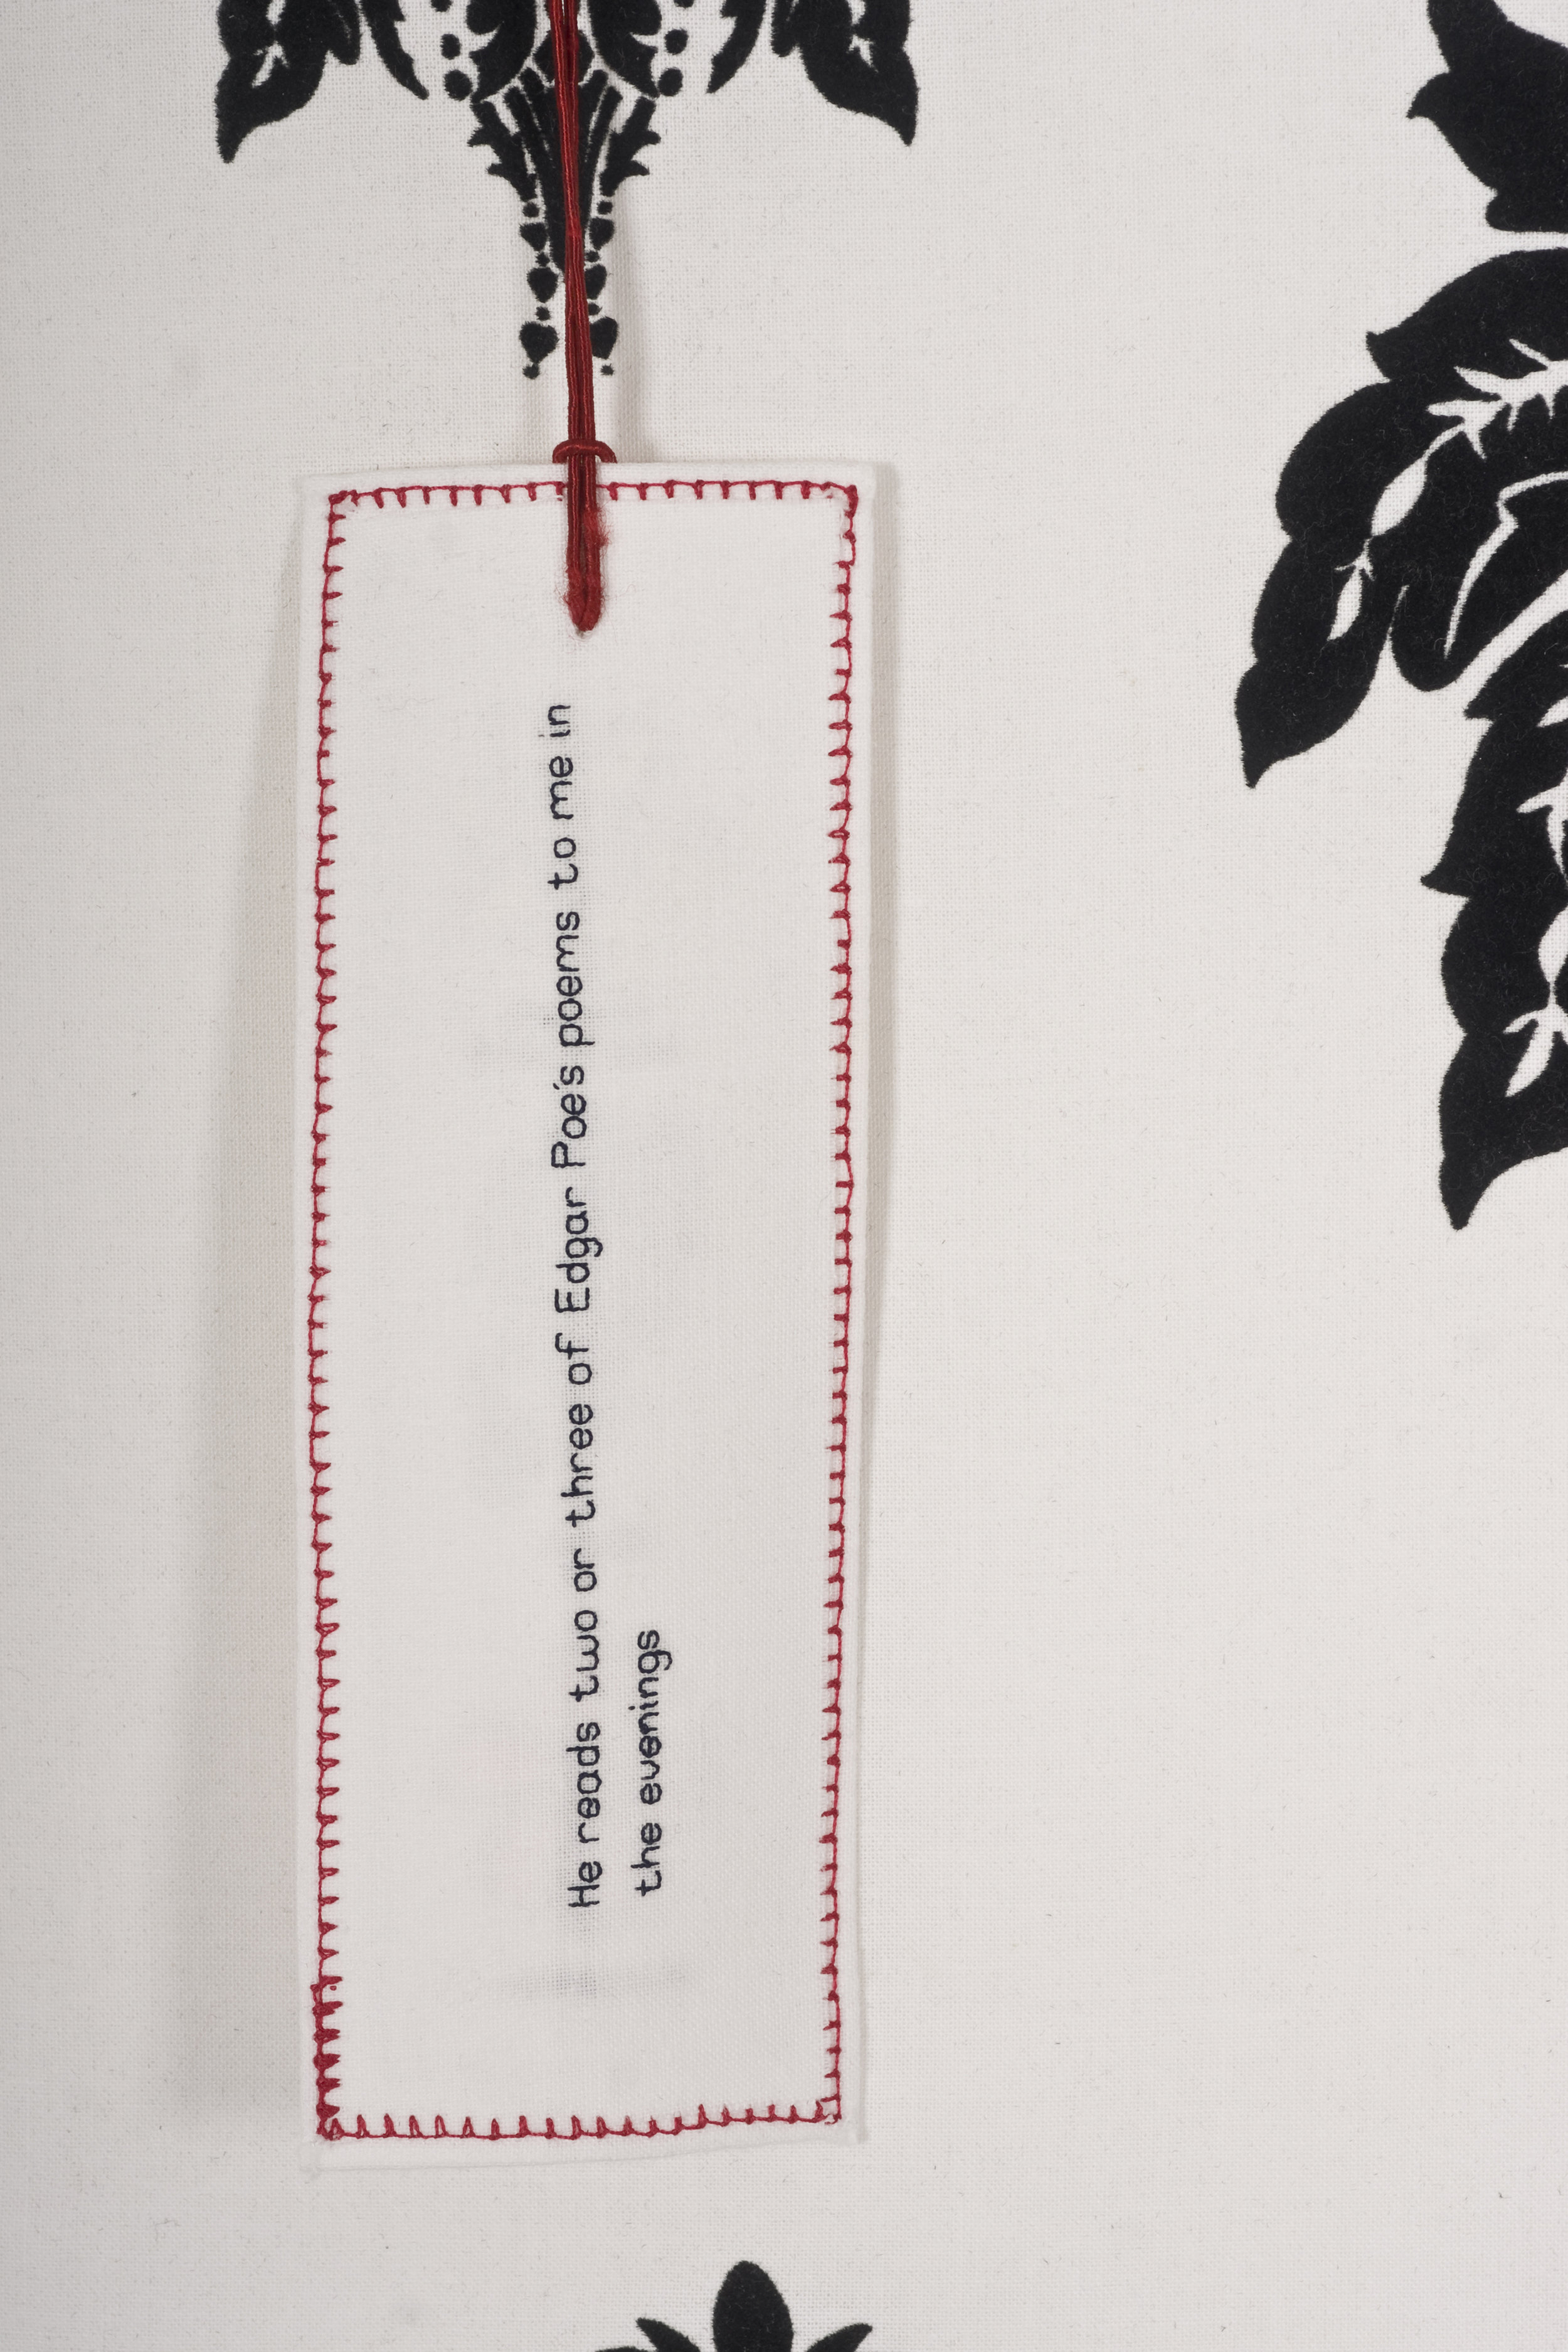 Tennyson read to Emily every night. Television soaps and their viewing figures are stitched onto the back of bookmarks…